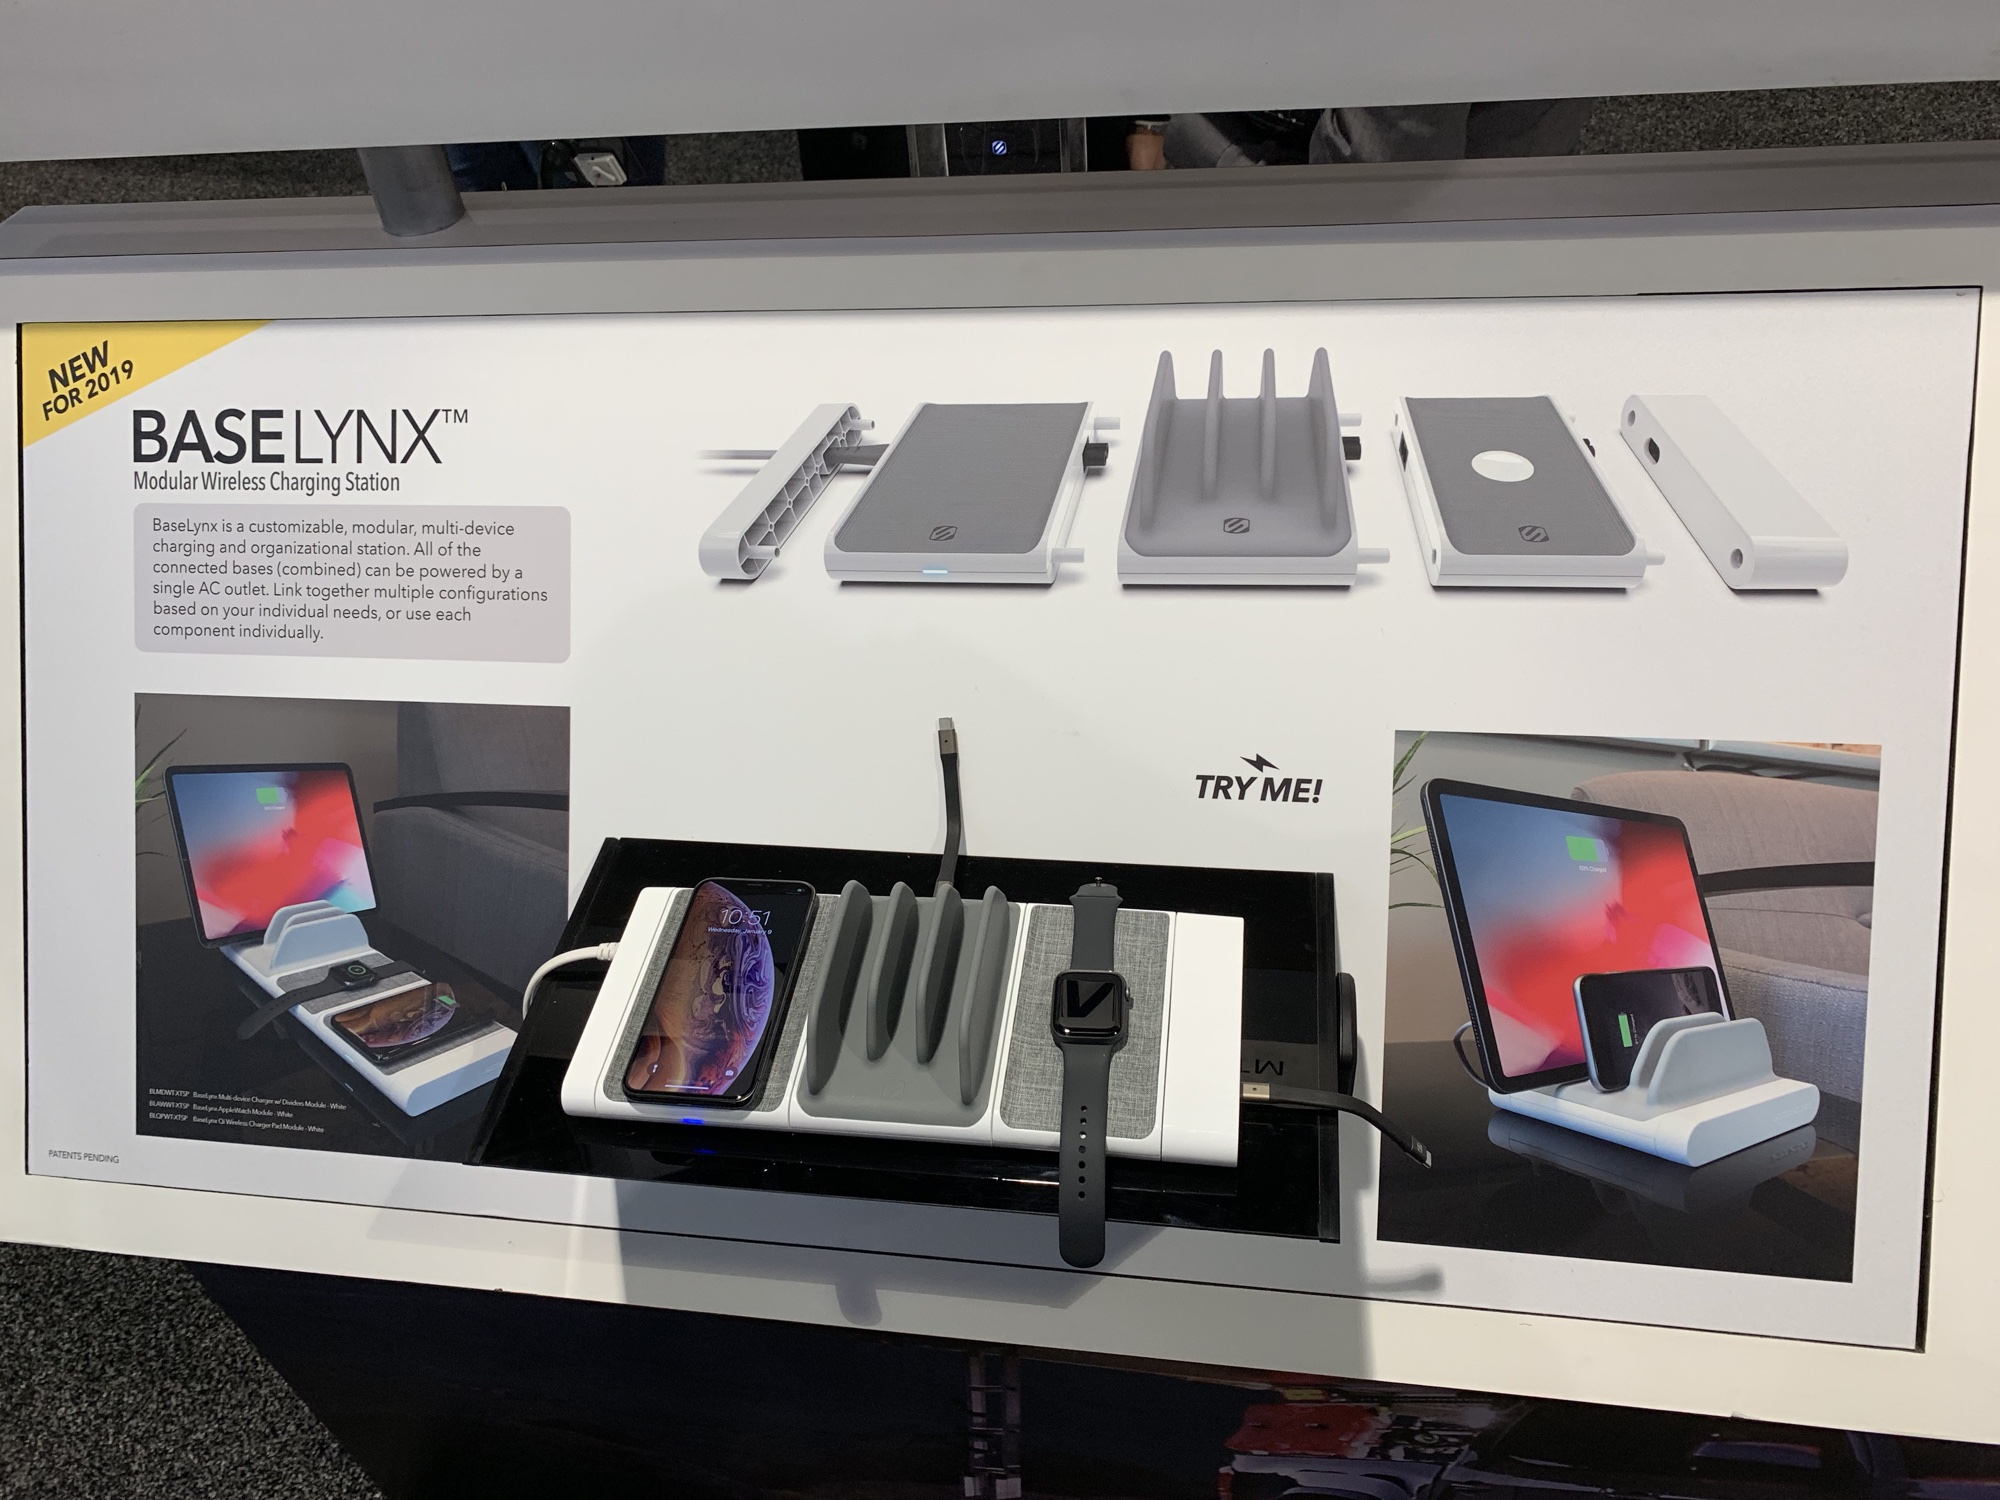 CES – Scosche BaseLynx Modular Wireless Charging Station Organizes and Charges Your Devices